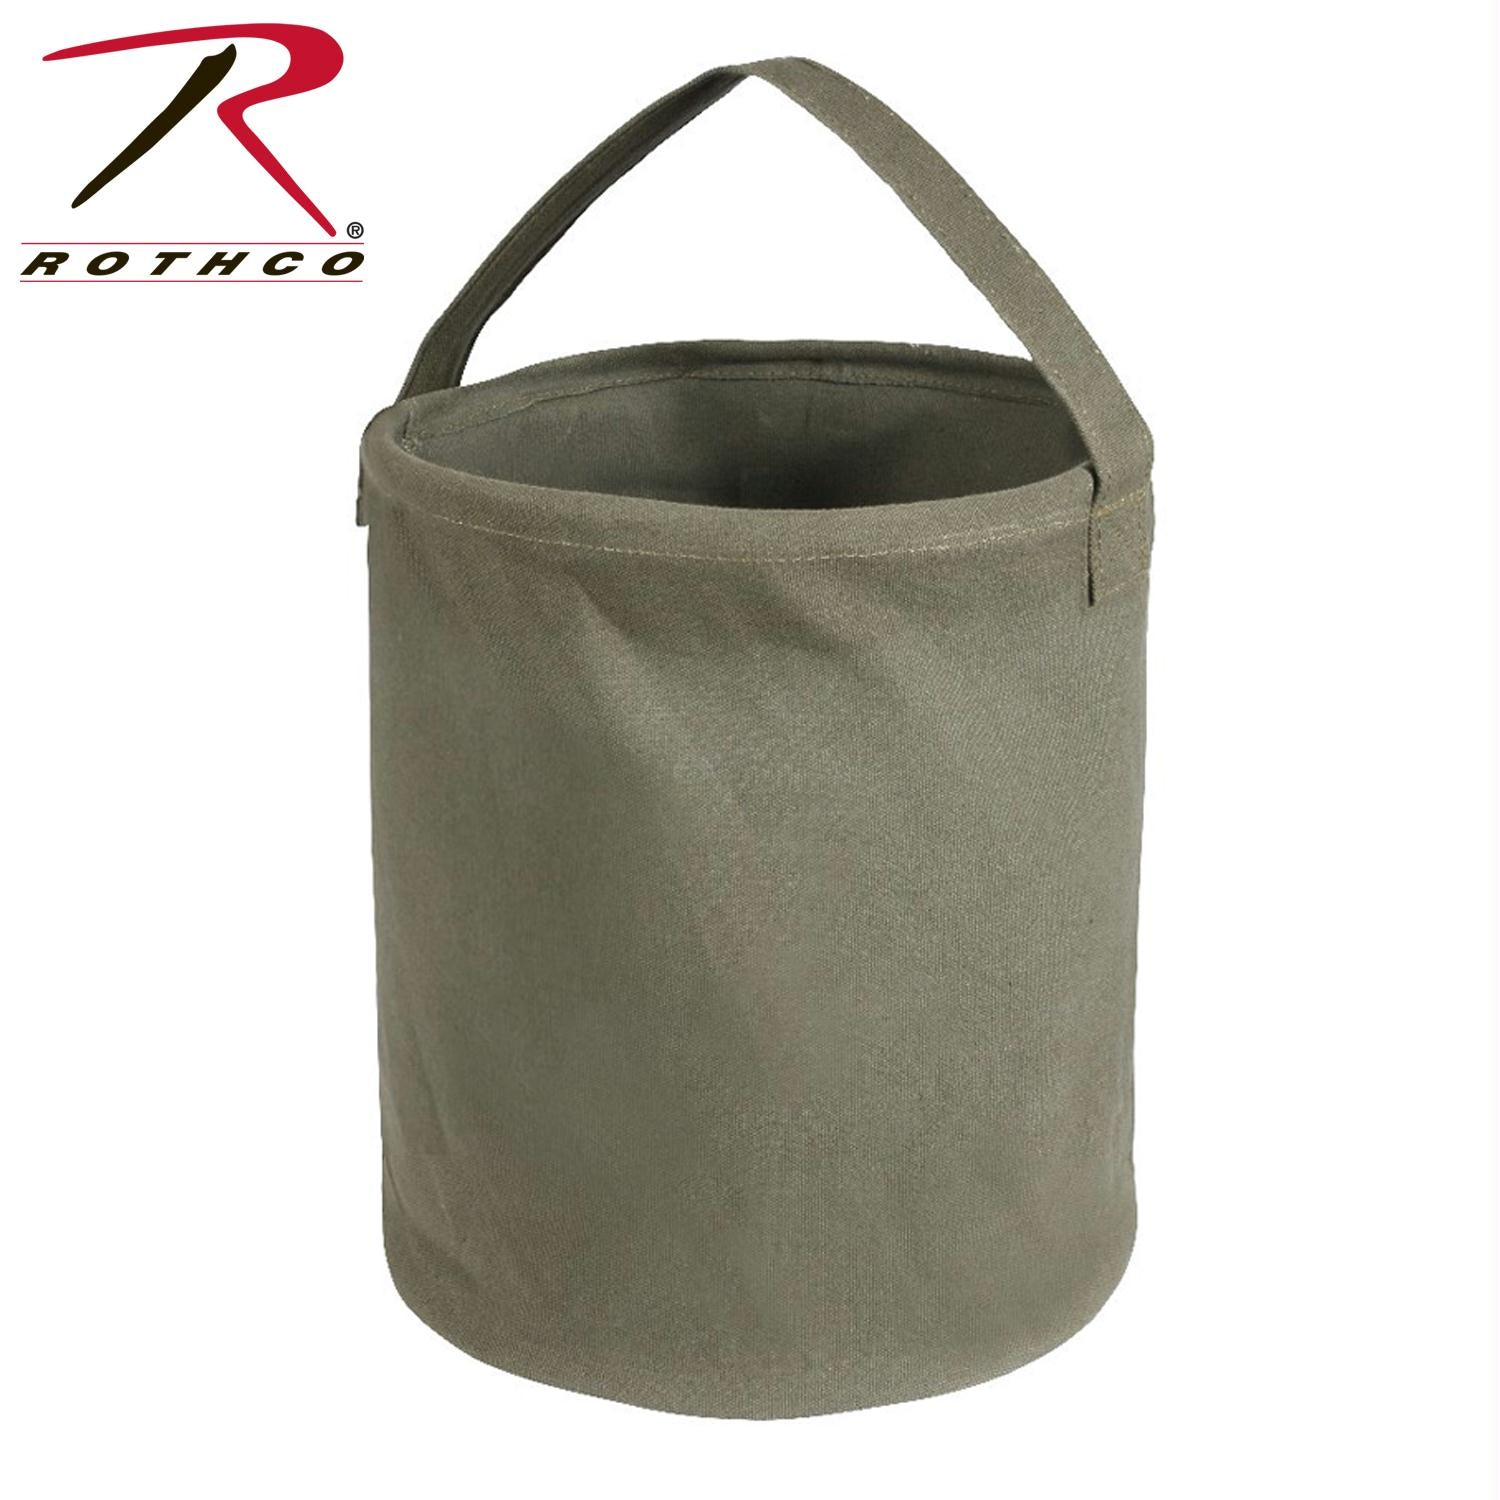 Rothco Canvas Water Bucket - Olive Drab / M